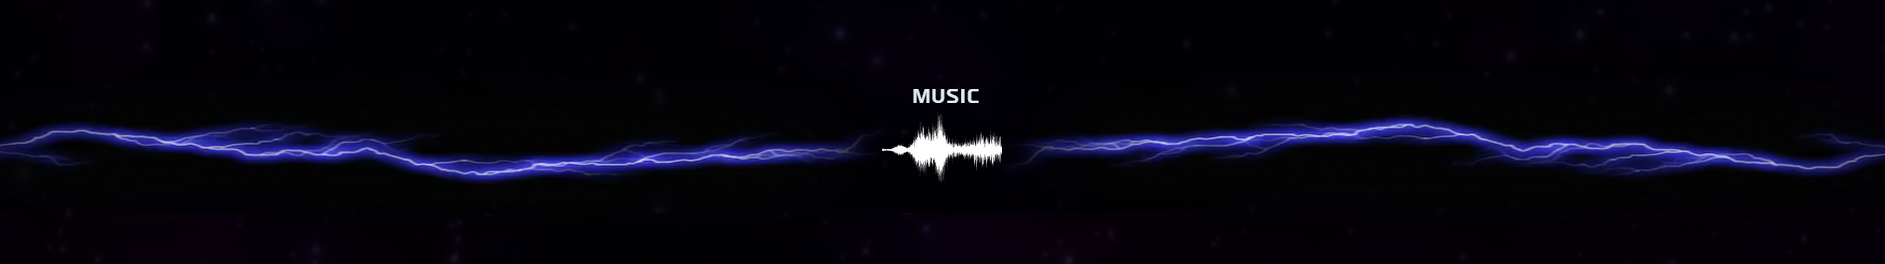 MUSIC BOARDER LINE.png